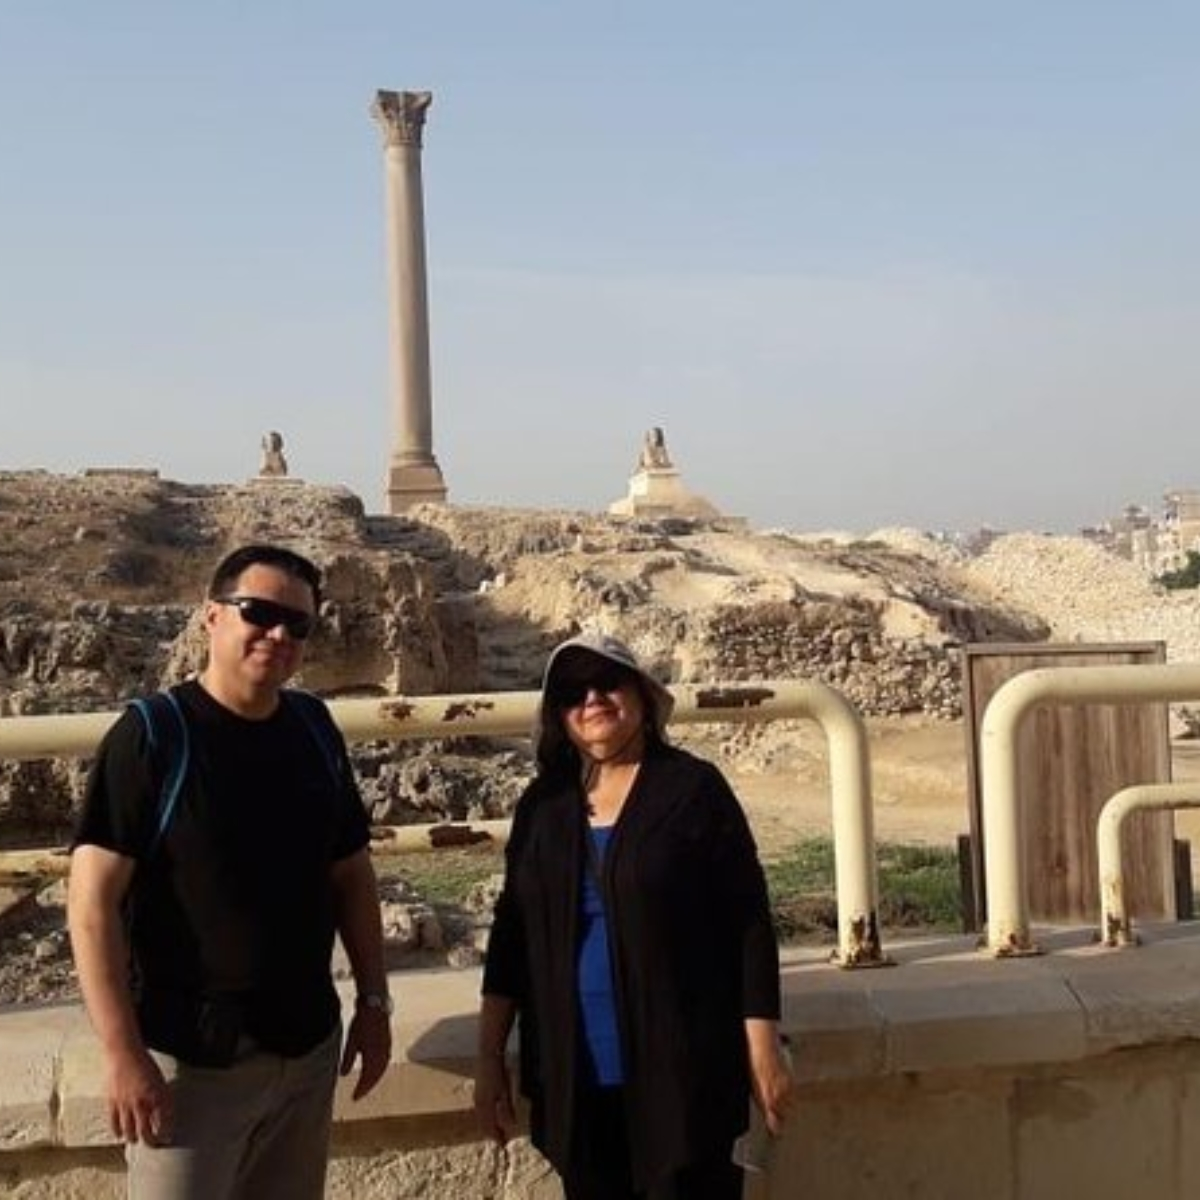 Alexandria day tour with private car only Images